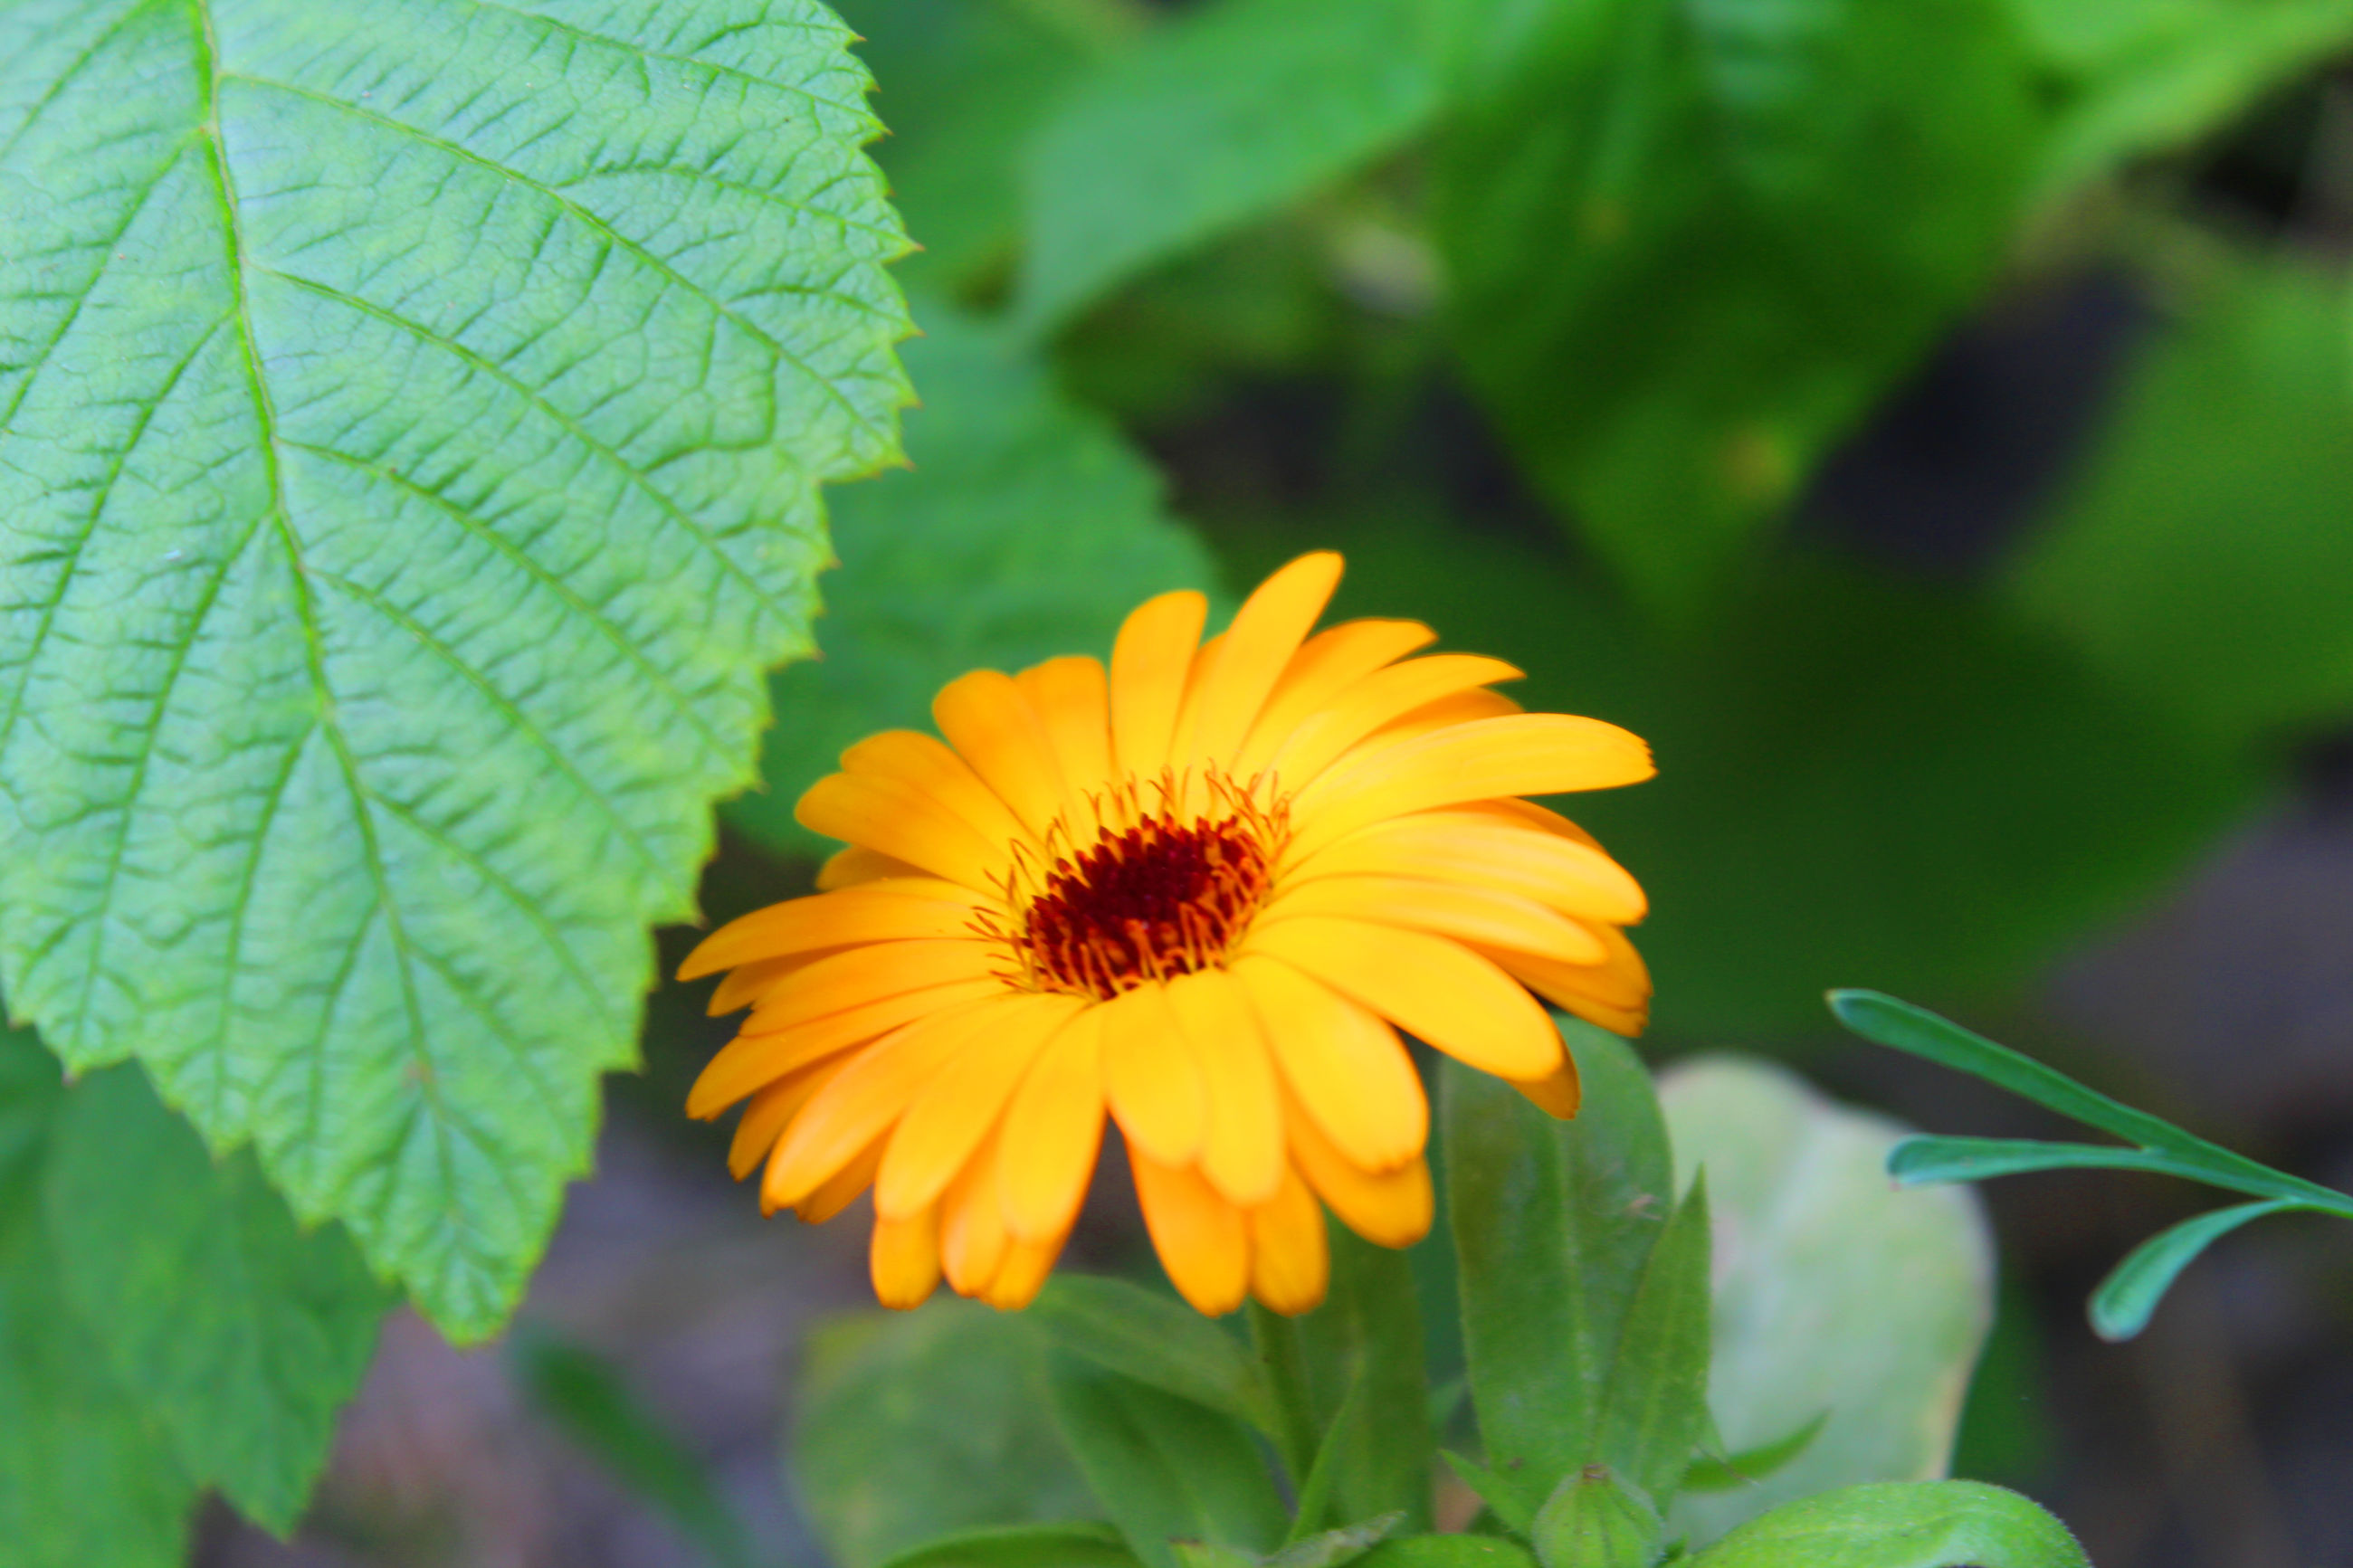 flower, freshness, petal, flower head, fragility, growth, leaf, yellow, beauty in nature, blooming, close-up, plant, focus on foreground, nature, pollen, single flower, orange color, in bloom, green color, blossom